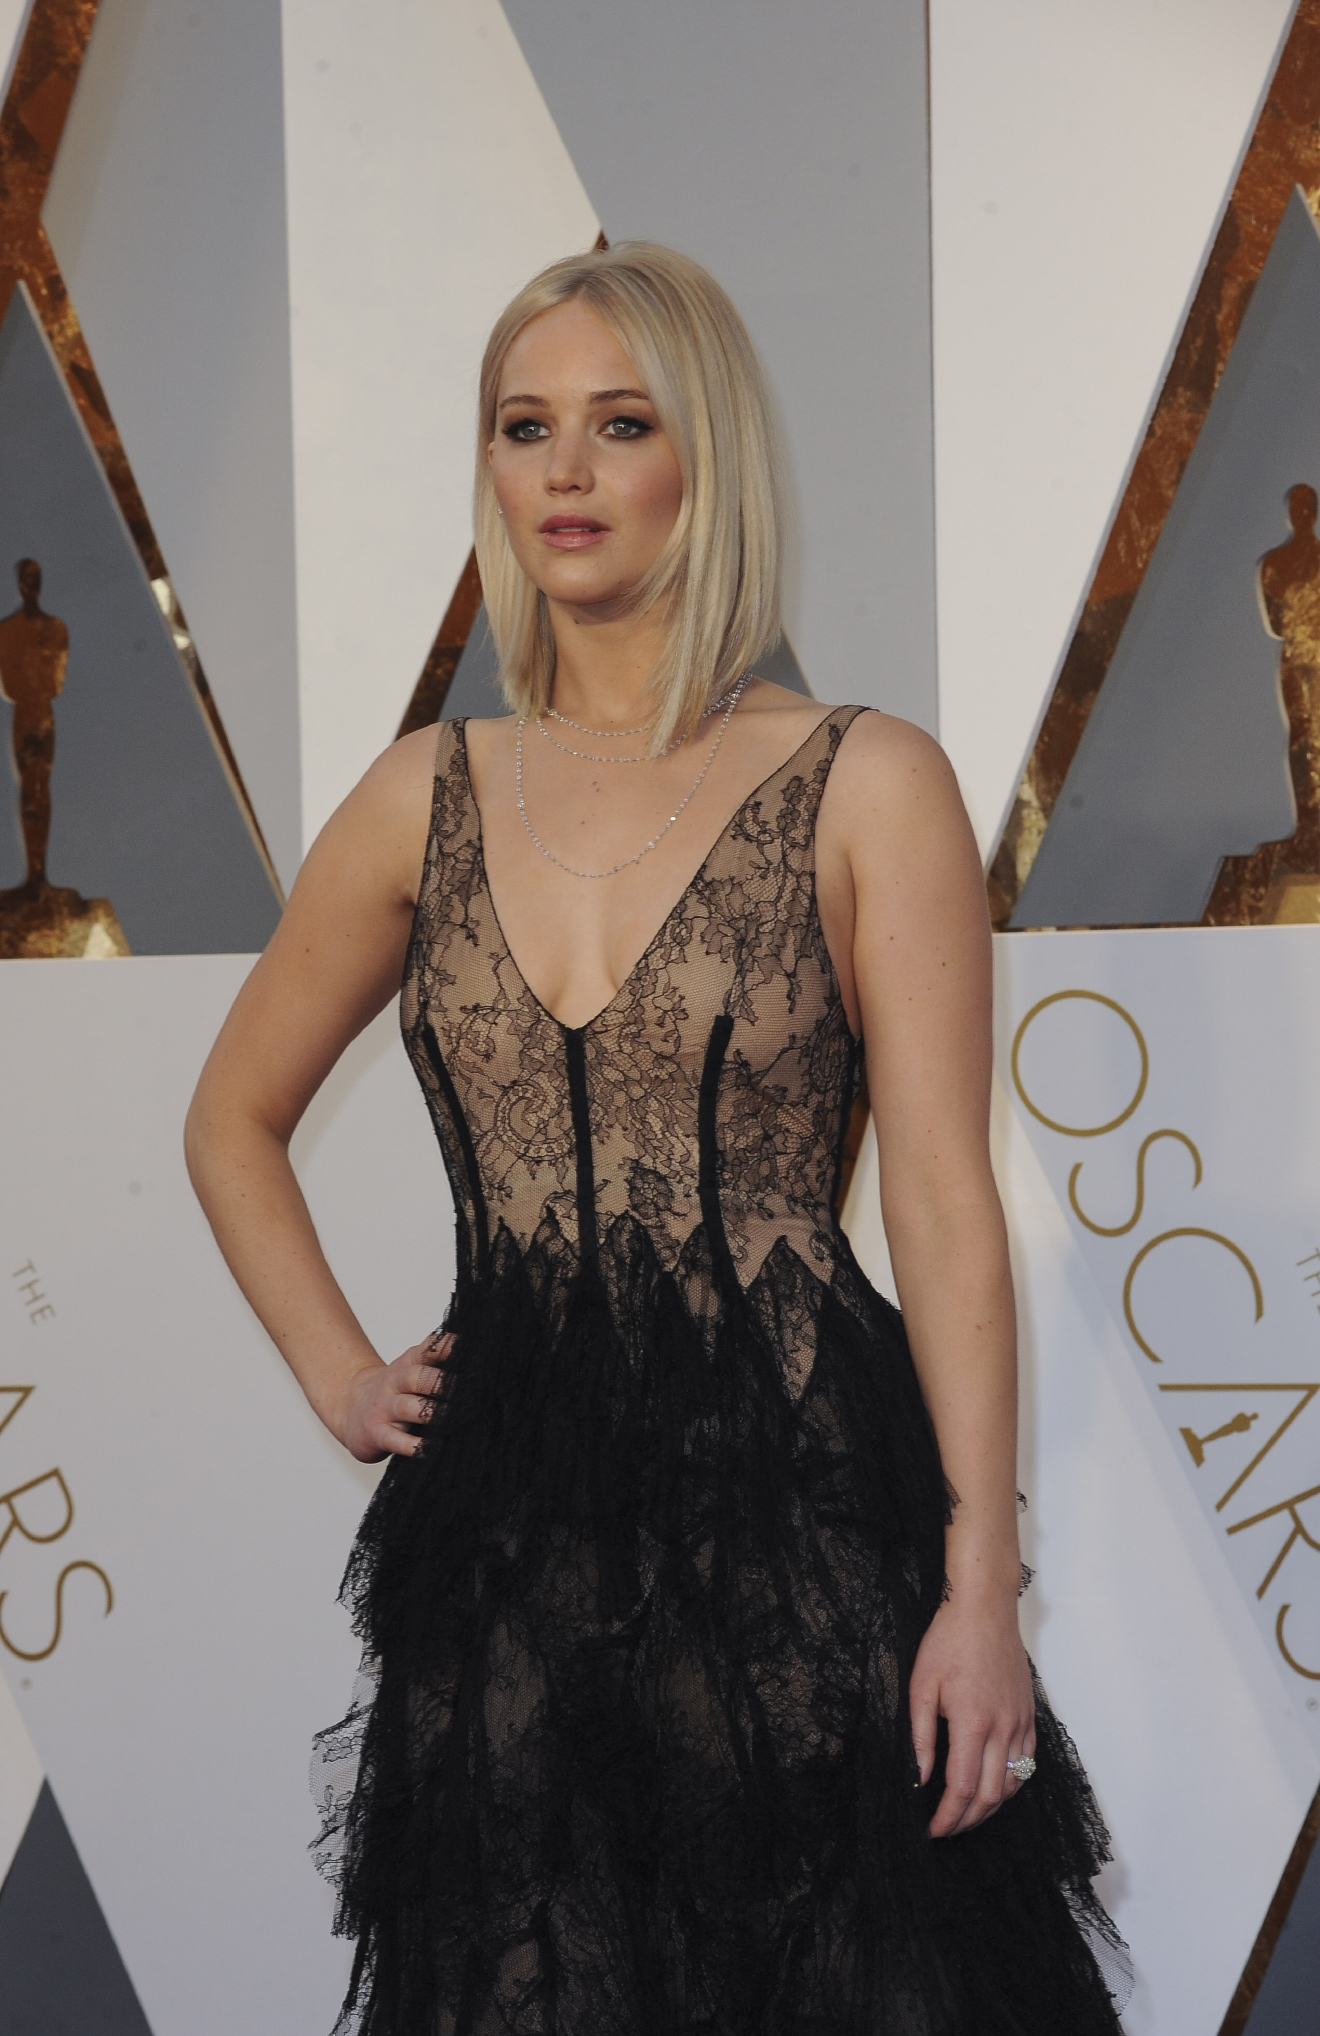 The 88th Annual Academy Awards Arrivals  Featuring: Jennifer Lawrence Where: Los Angeles, California, United States When: 29 Feb 2016 Credit: Apega/WENN.com